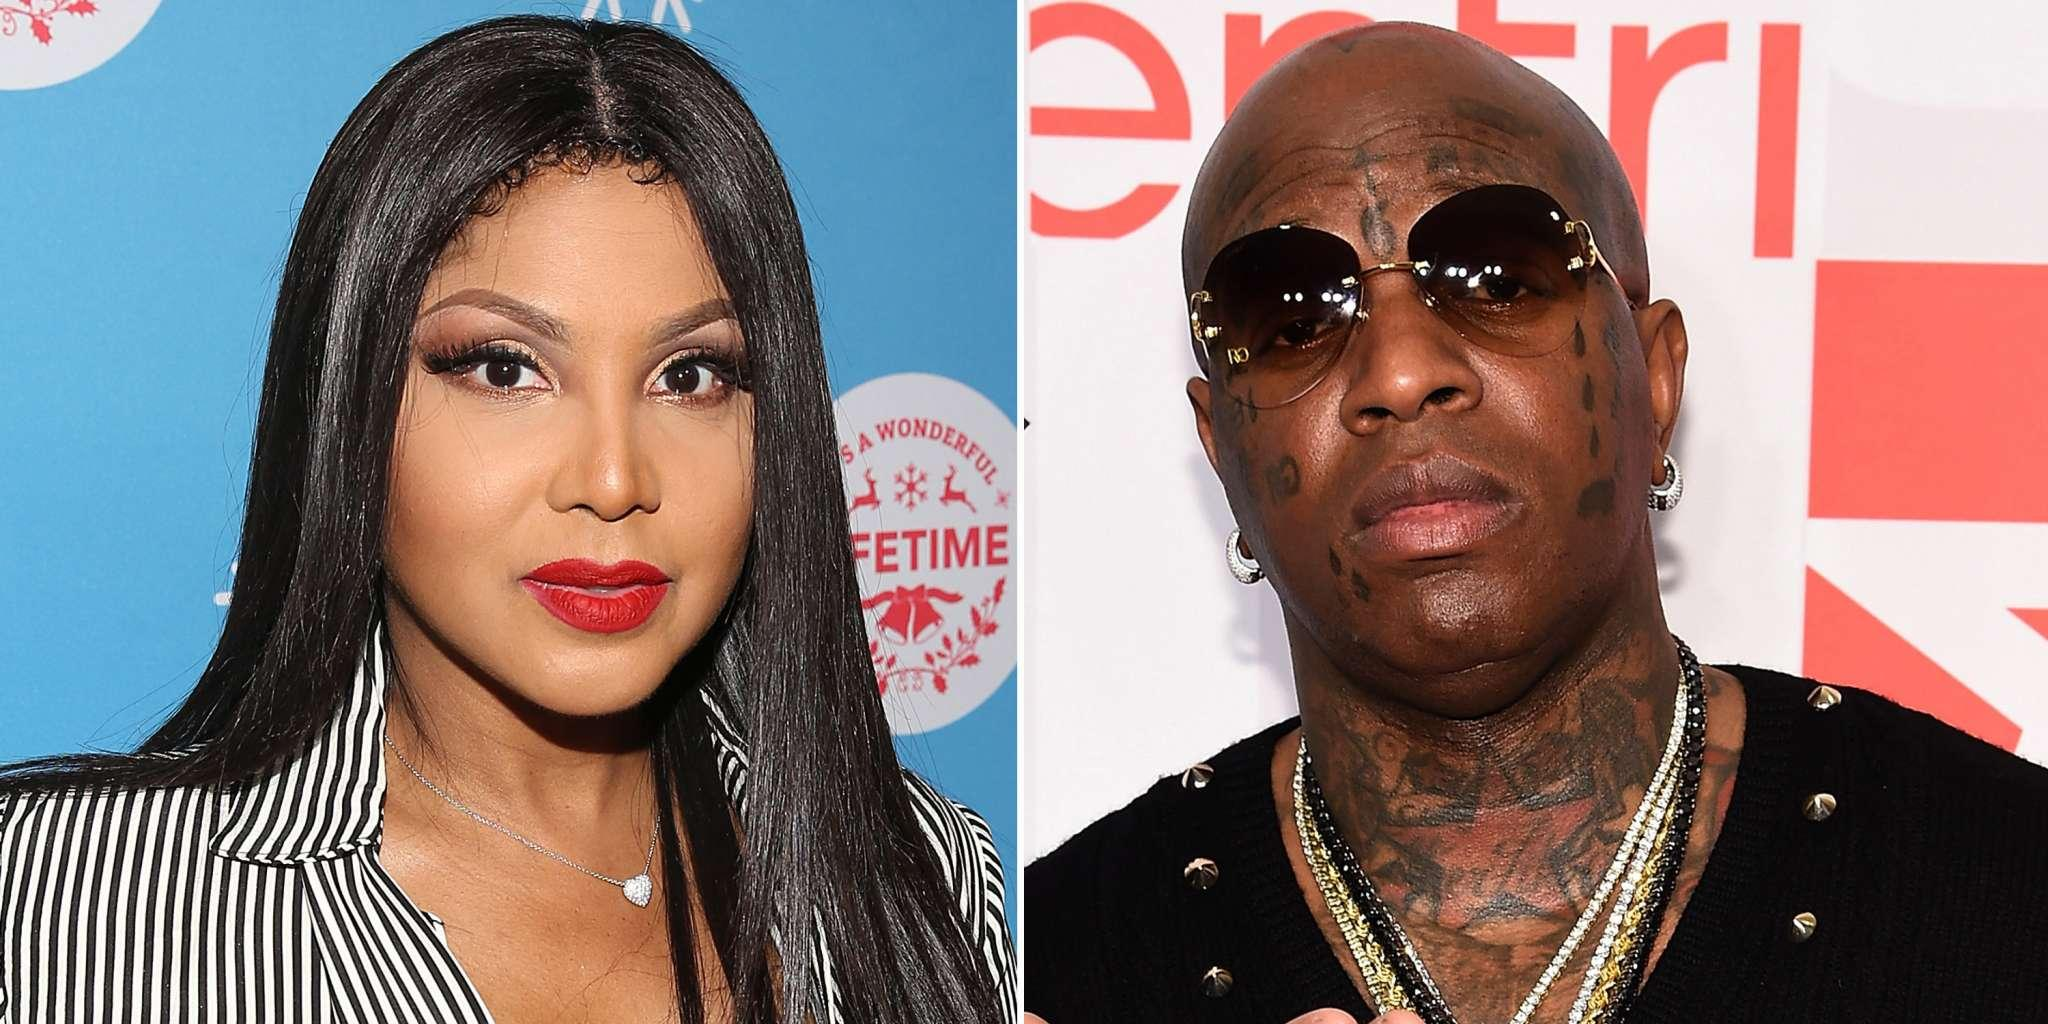 Toni Braxton's Sisters Talk About Her Relationship With Birdman - Are They Still Engaged?